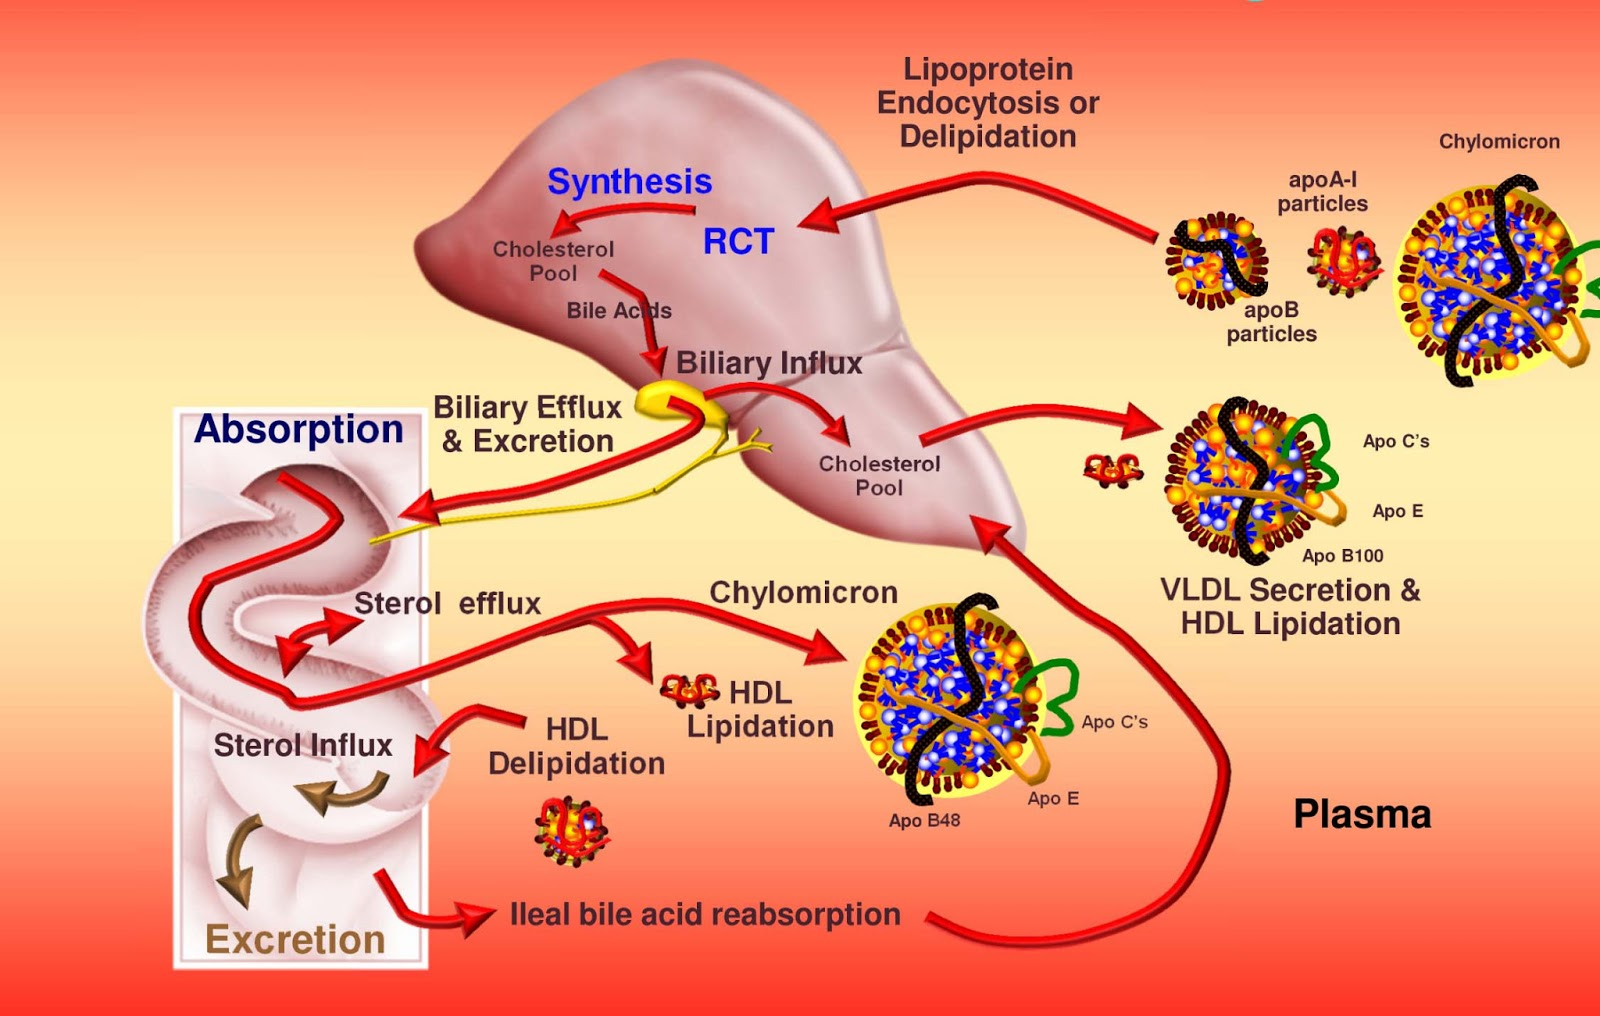 what is the relationship between hdl ldl and total cholesterol